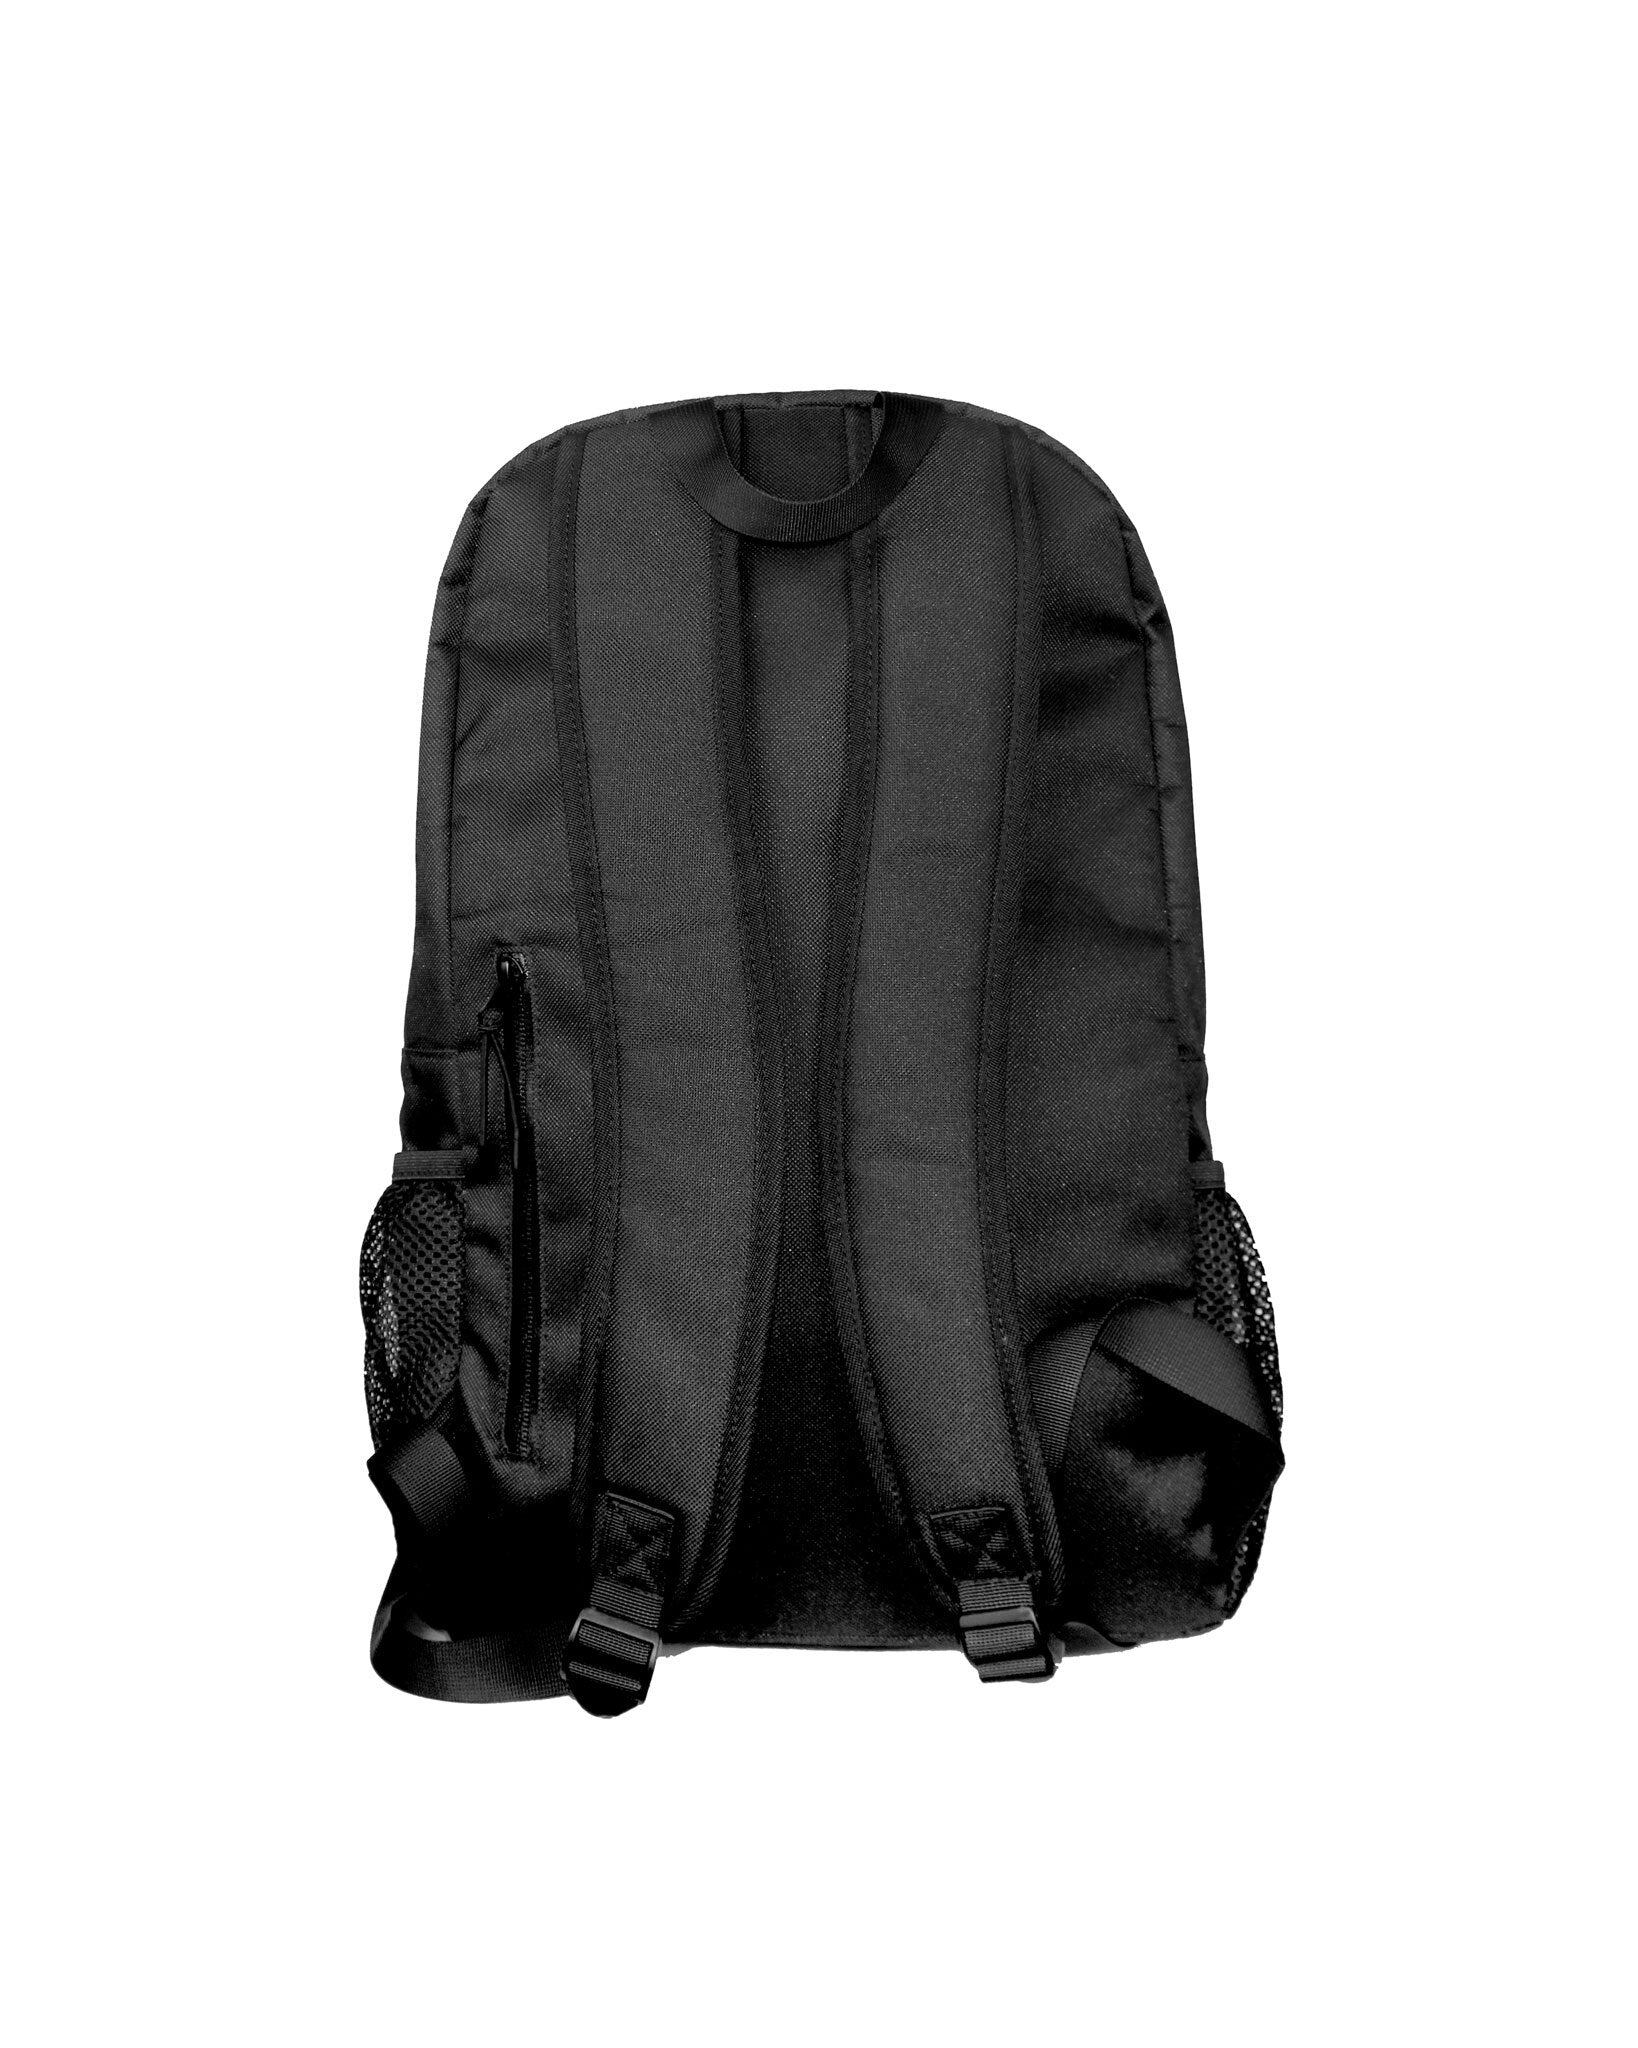 Adelaide 36ers 20/21 Official Backpack